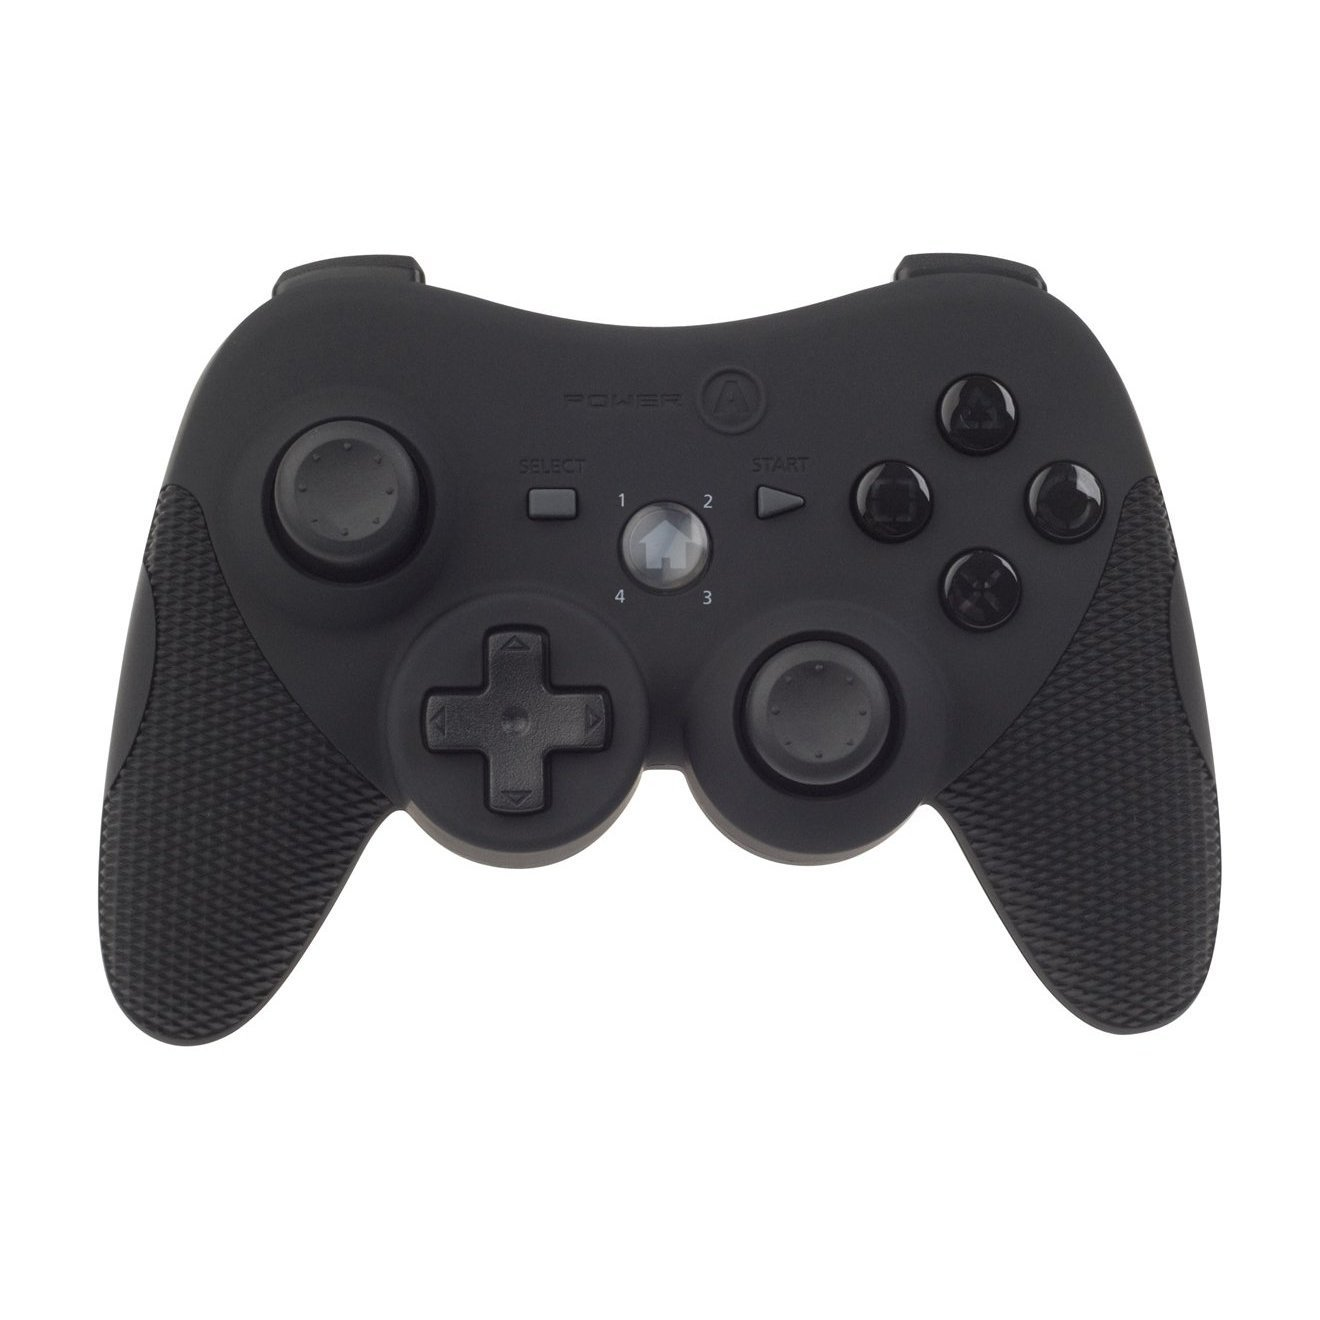 3rd Party Wireless Controller